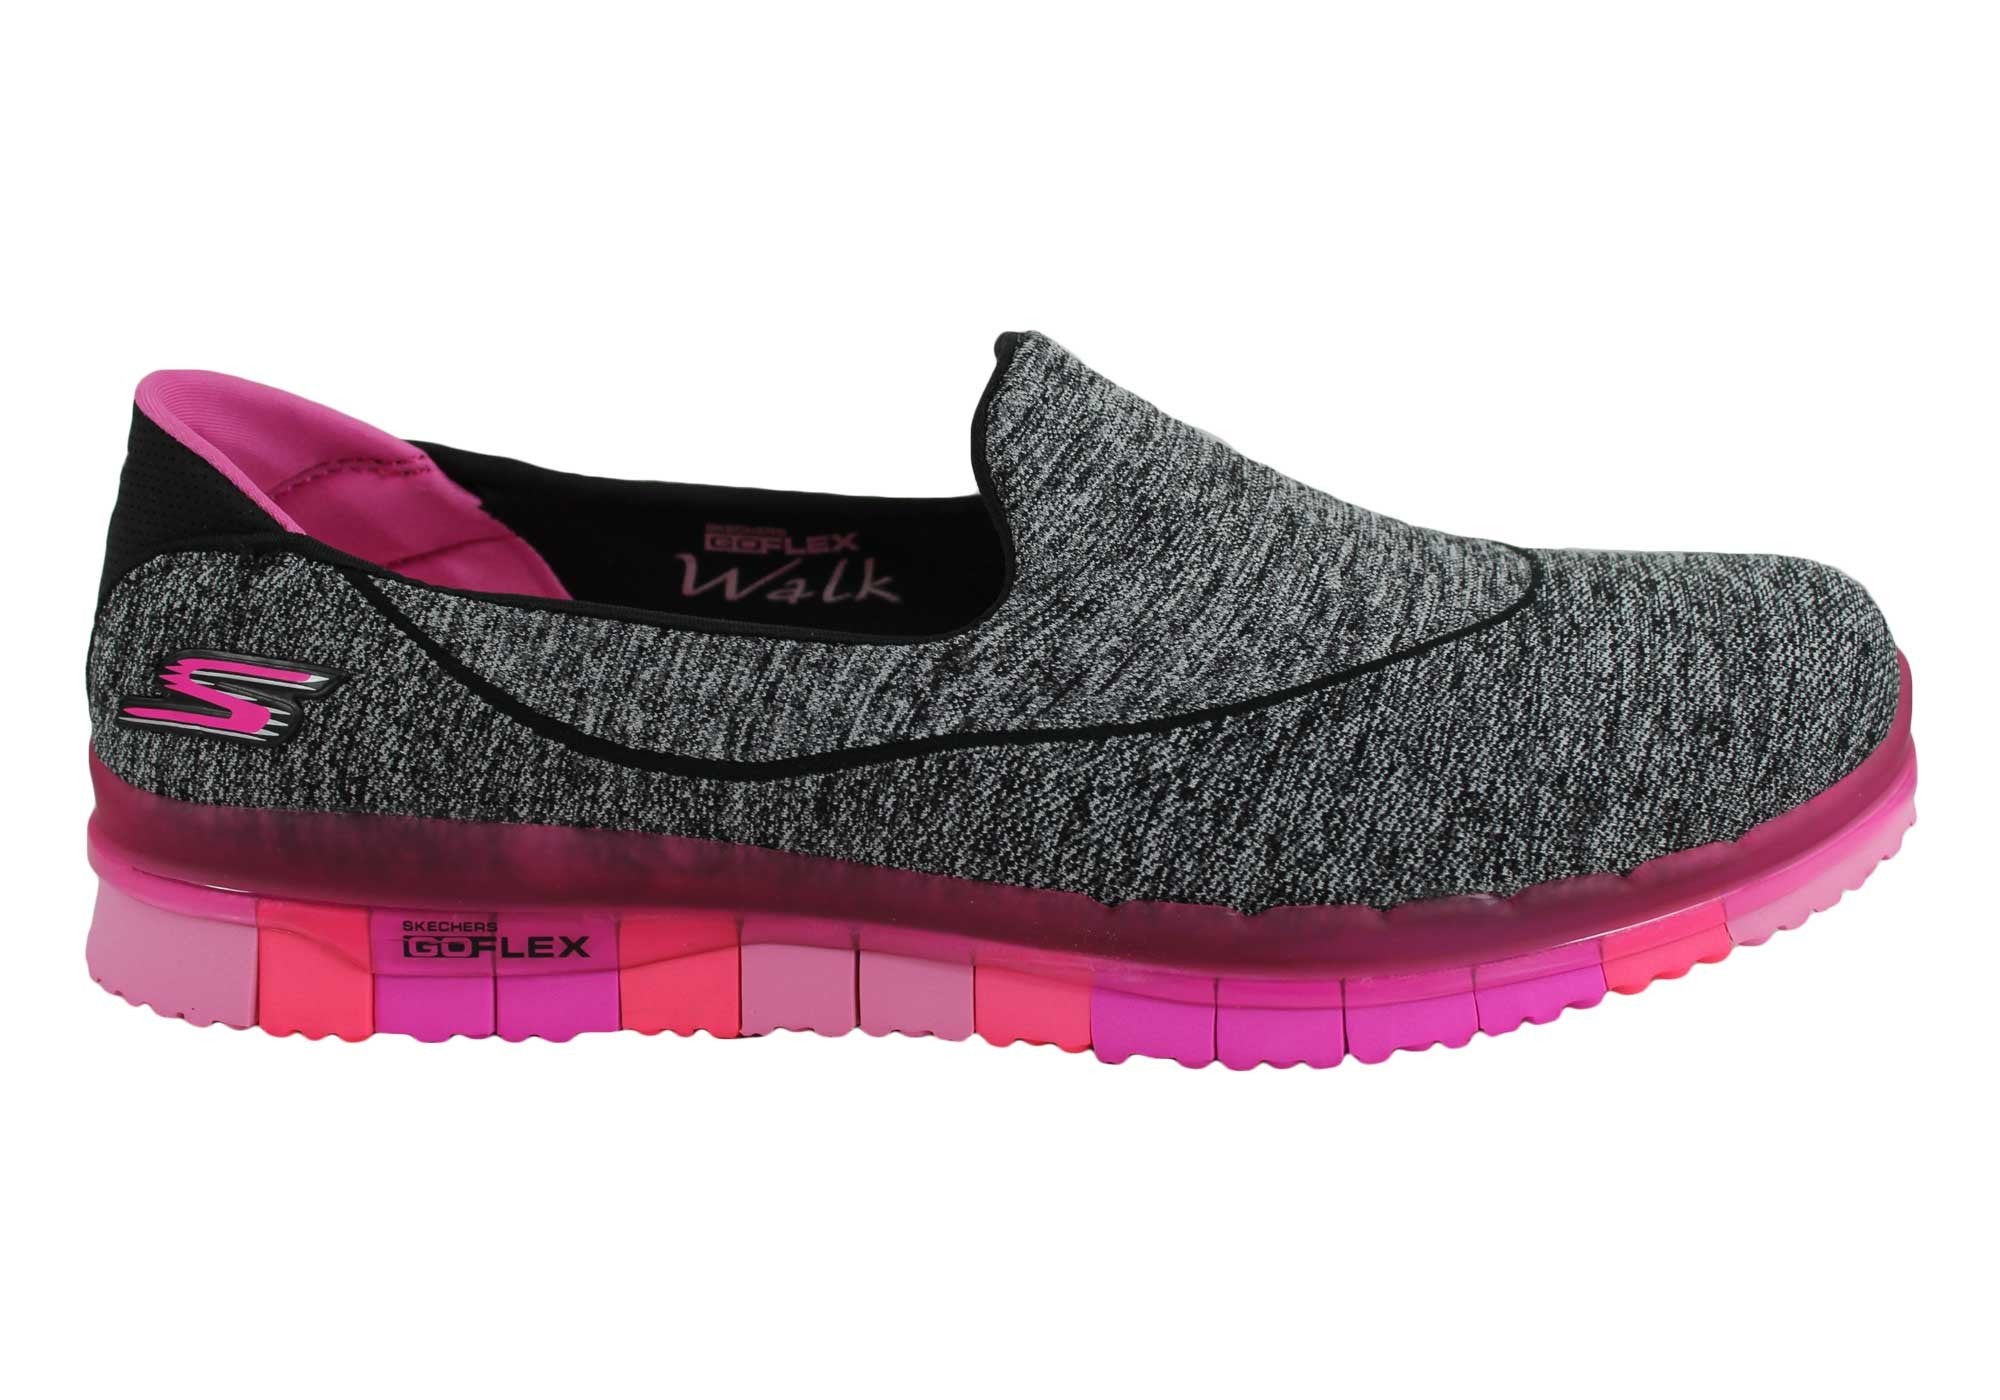 a7ba07b79537 Home Skechers Go Flex Walk Flexible Womens Slip On Shoes. Black Hot Pink ...